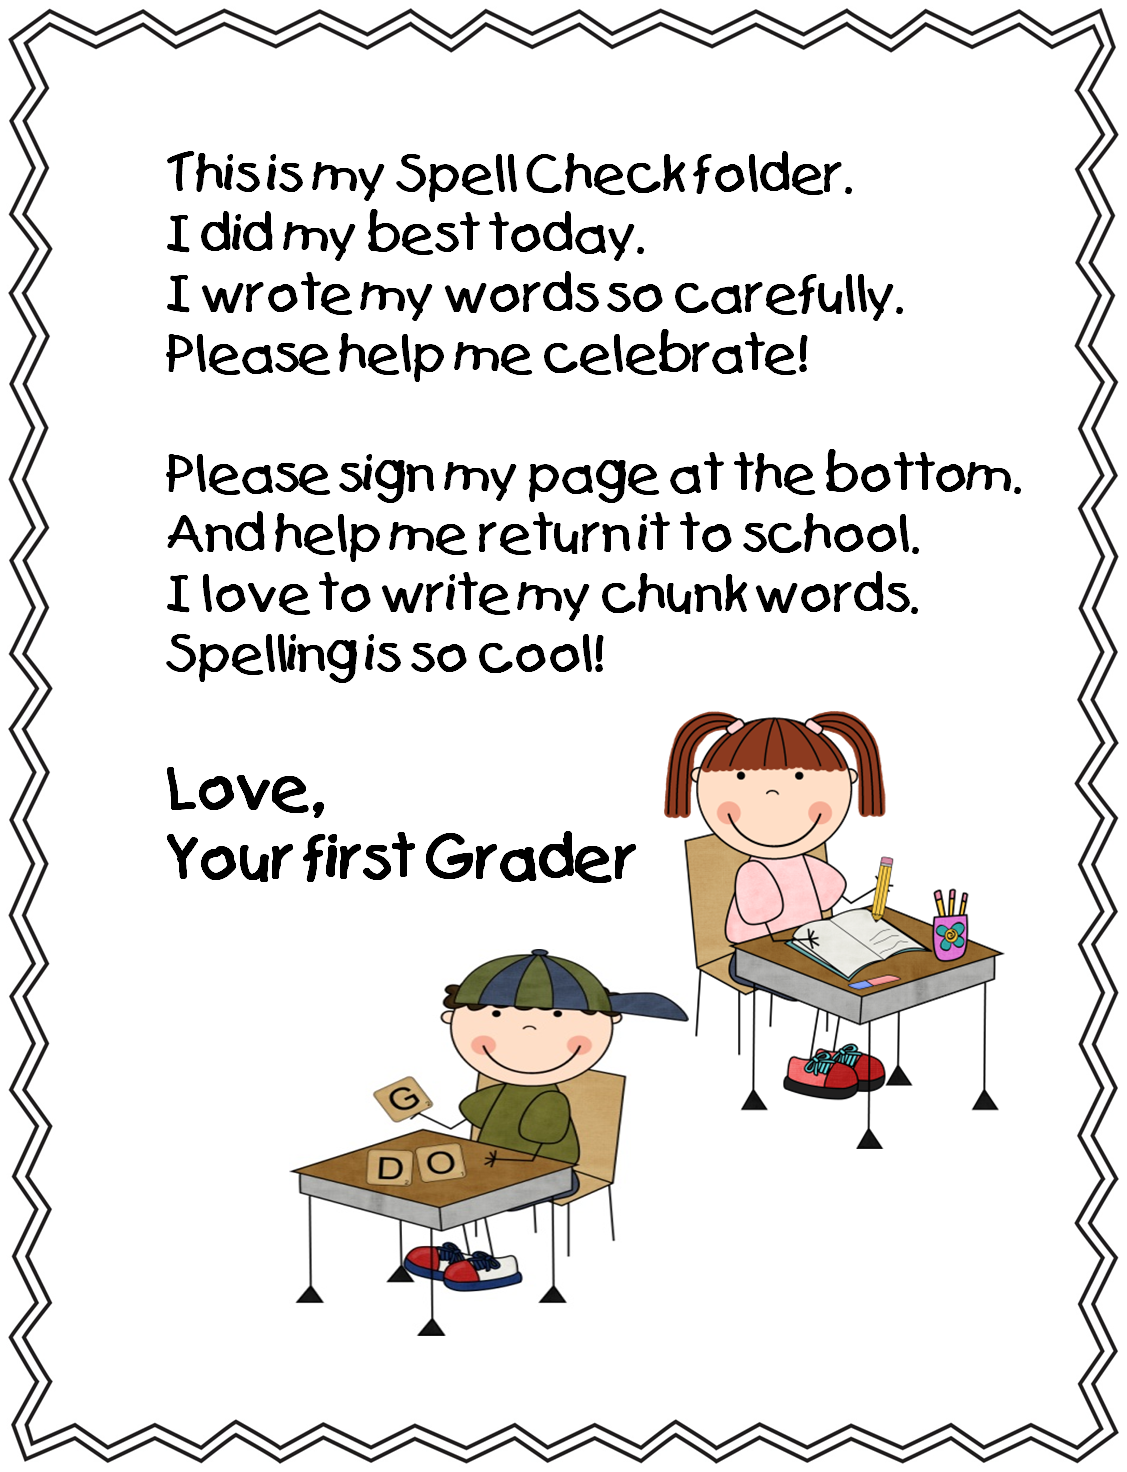 Worksheet Spelling Test For Children first grade wow chunk challenge spelling resource sunday july 22 2012